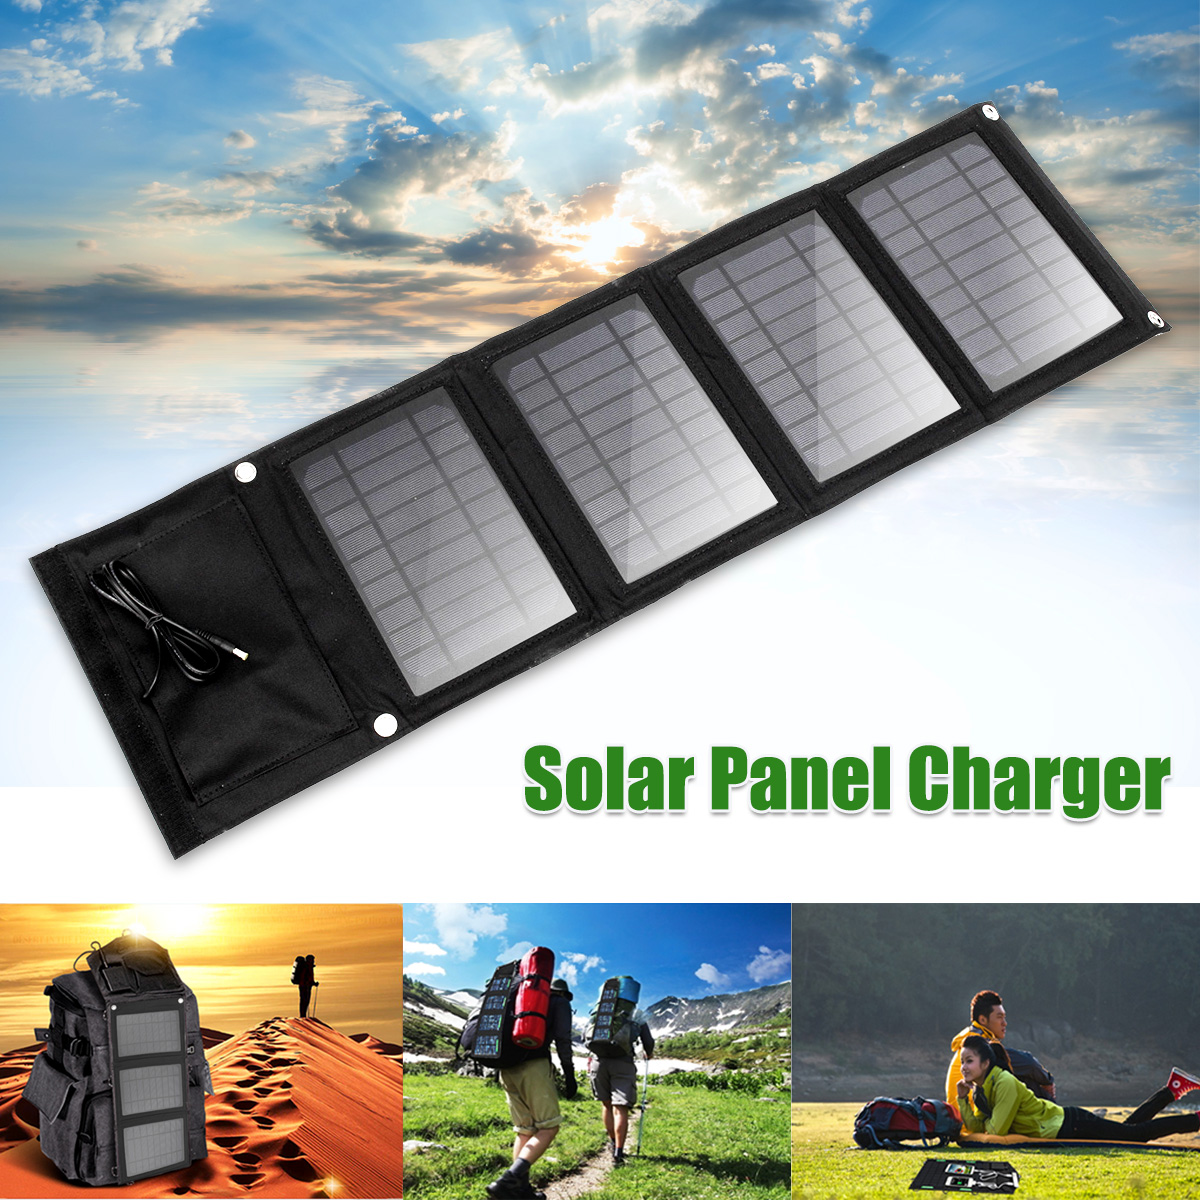 Portable 16W Folding Foldable Waterproof Solar Panel Charger Mobile Power Bank for Phone Battery Dual USB Port Outdoor xinpuguang solar panel charger 100w 9v 18v foldable portable black fabric waterproof power bank phone 12v battery dual usb 5v 2a